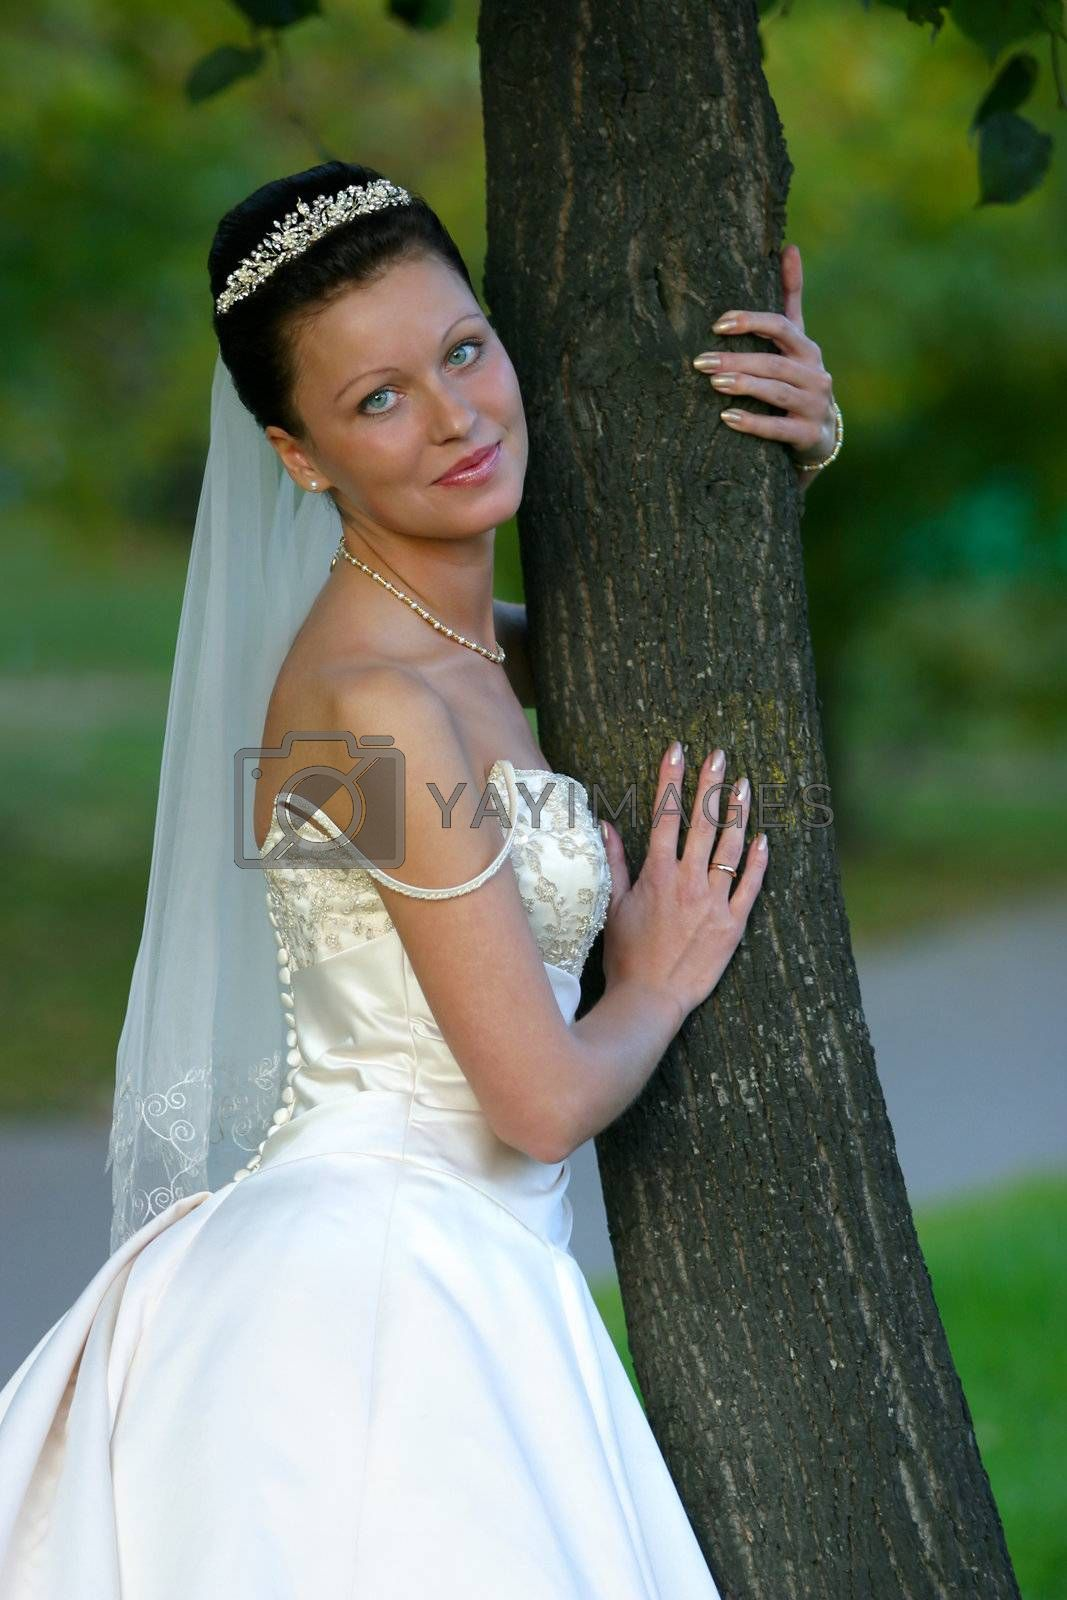 Portrait of the beautiful bride worth near a tree